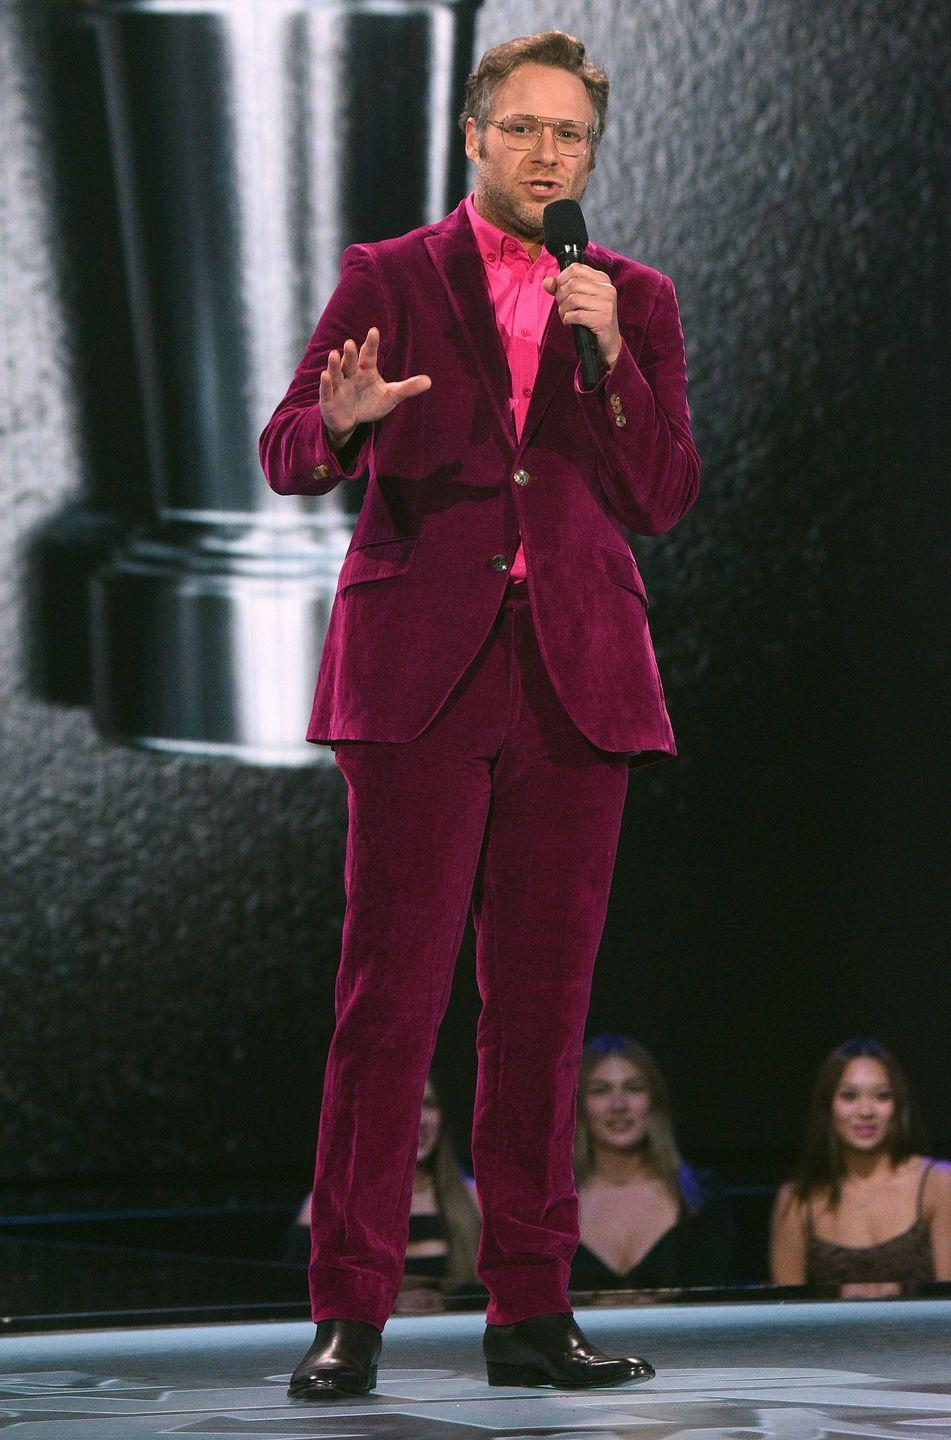 Photo credit: Kevin Mazur/2021 MTV Movie and TV Awards - Getty Images